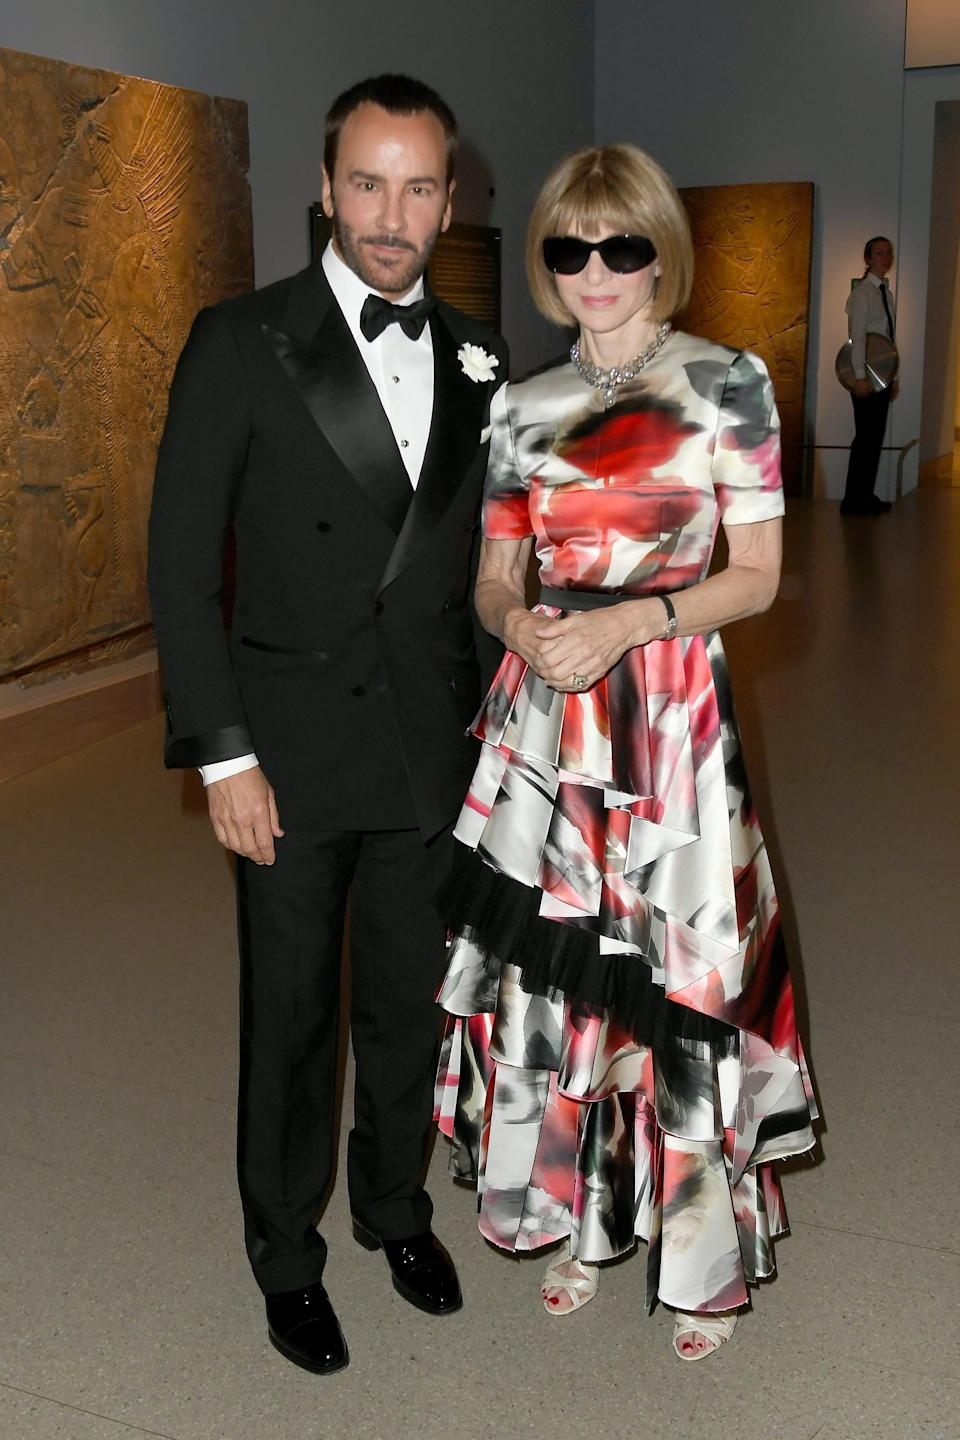 <p>Honorary chairs for the evening will include Anna Wintour, Tom Ford, and Head of Instagram Adam Mosseri.</p>